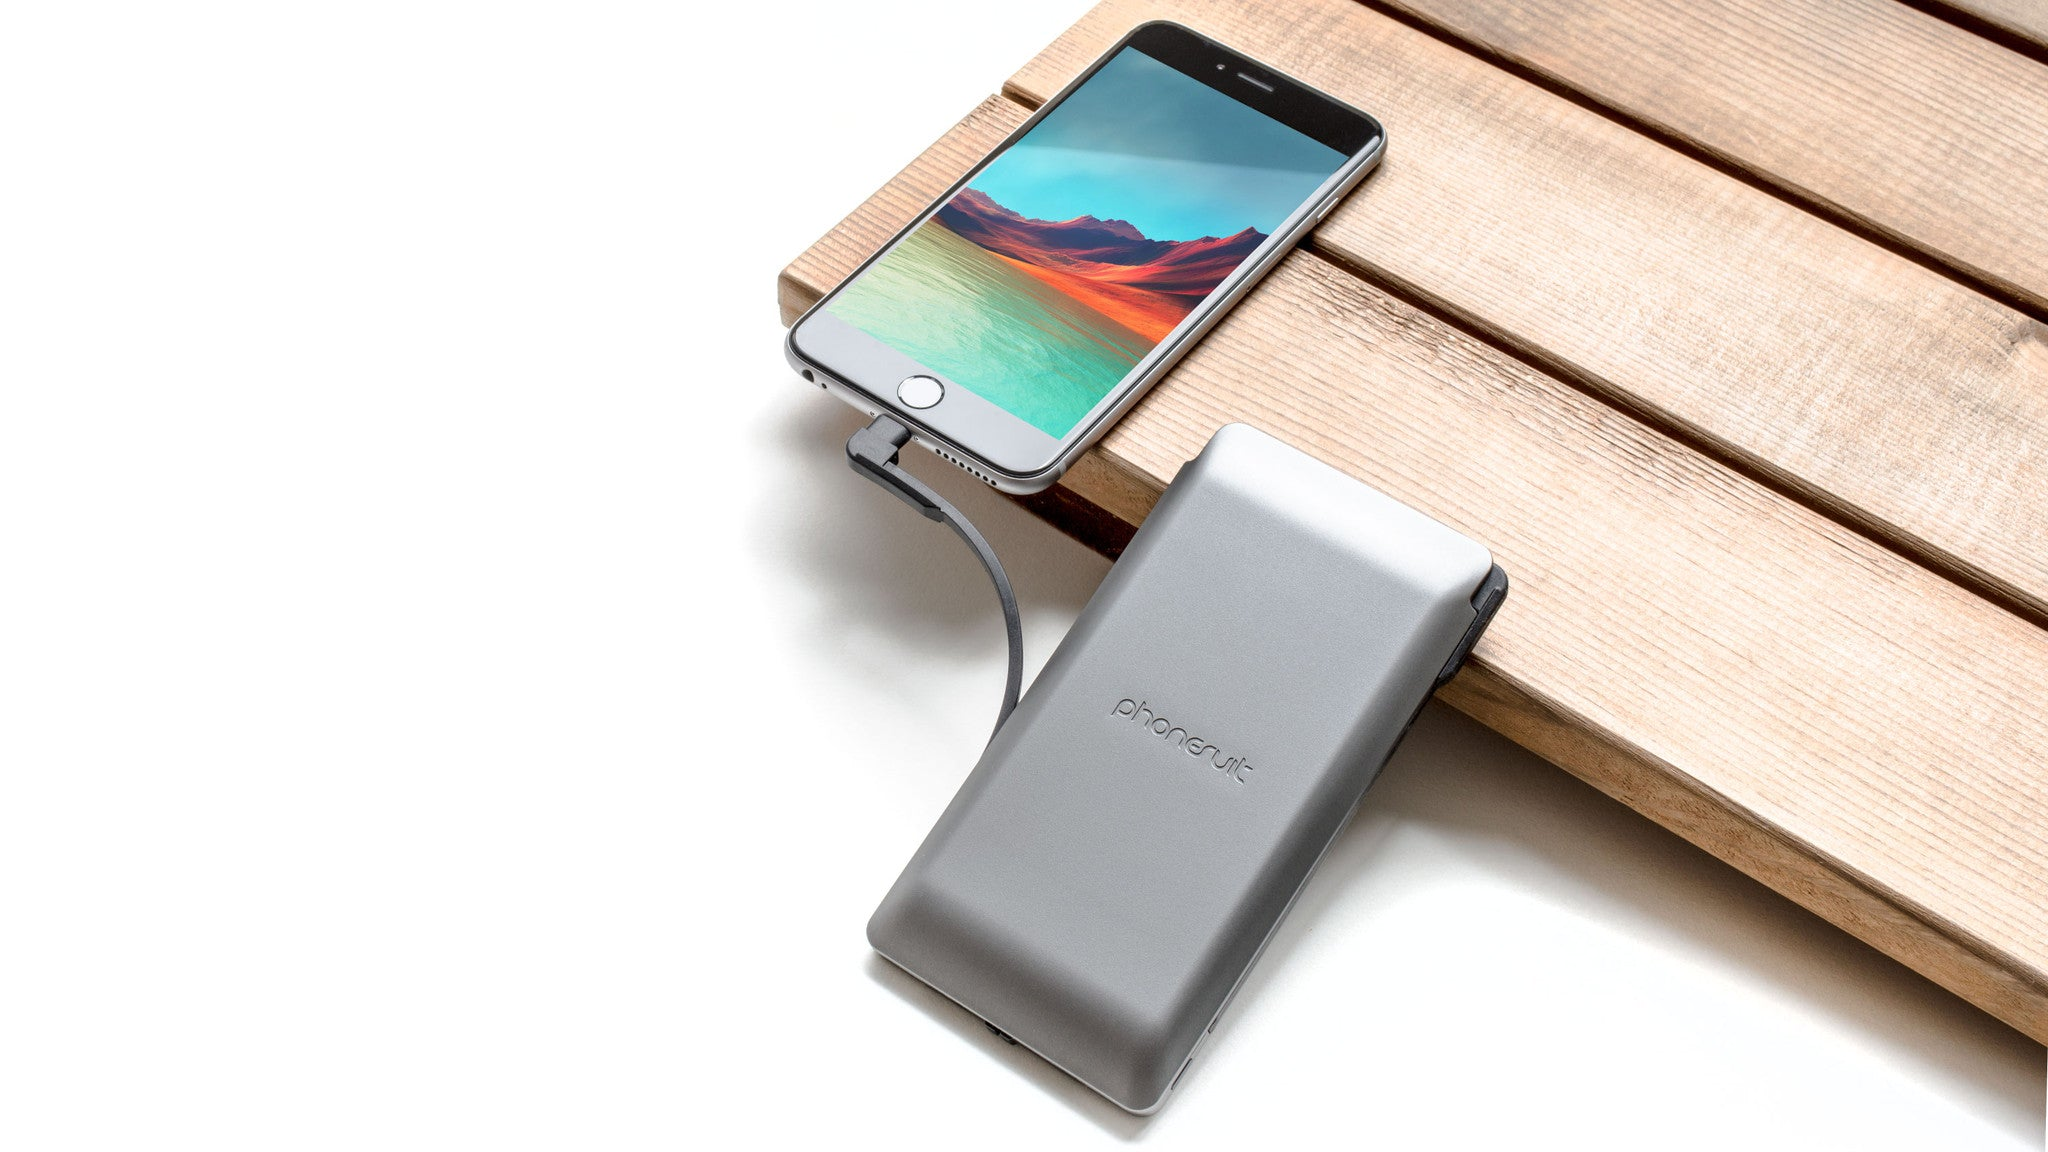 Journey Travel Charger Max |  Portable-Power Bank, Lightning & USB Cable | for iPhone & Smartphones